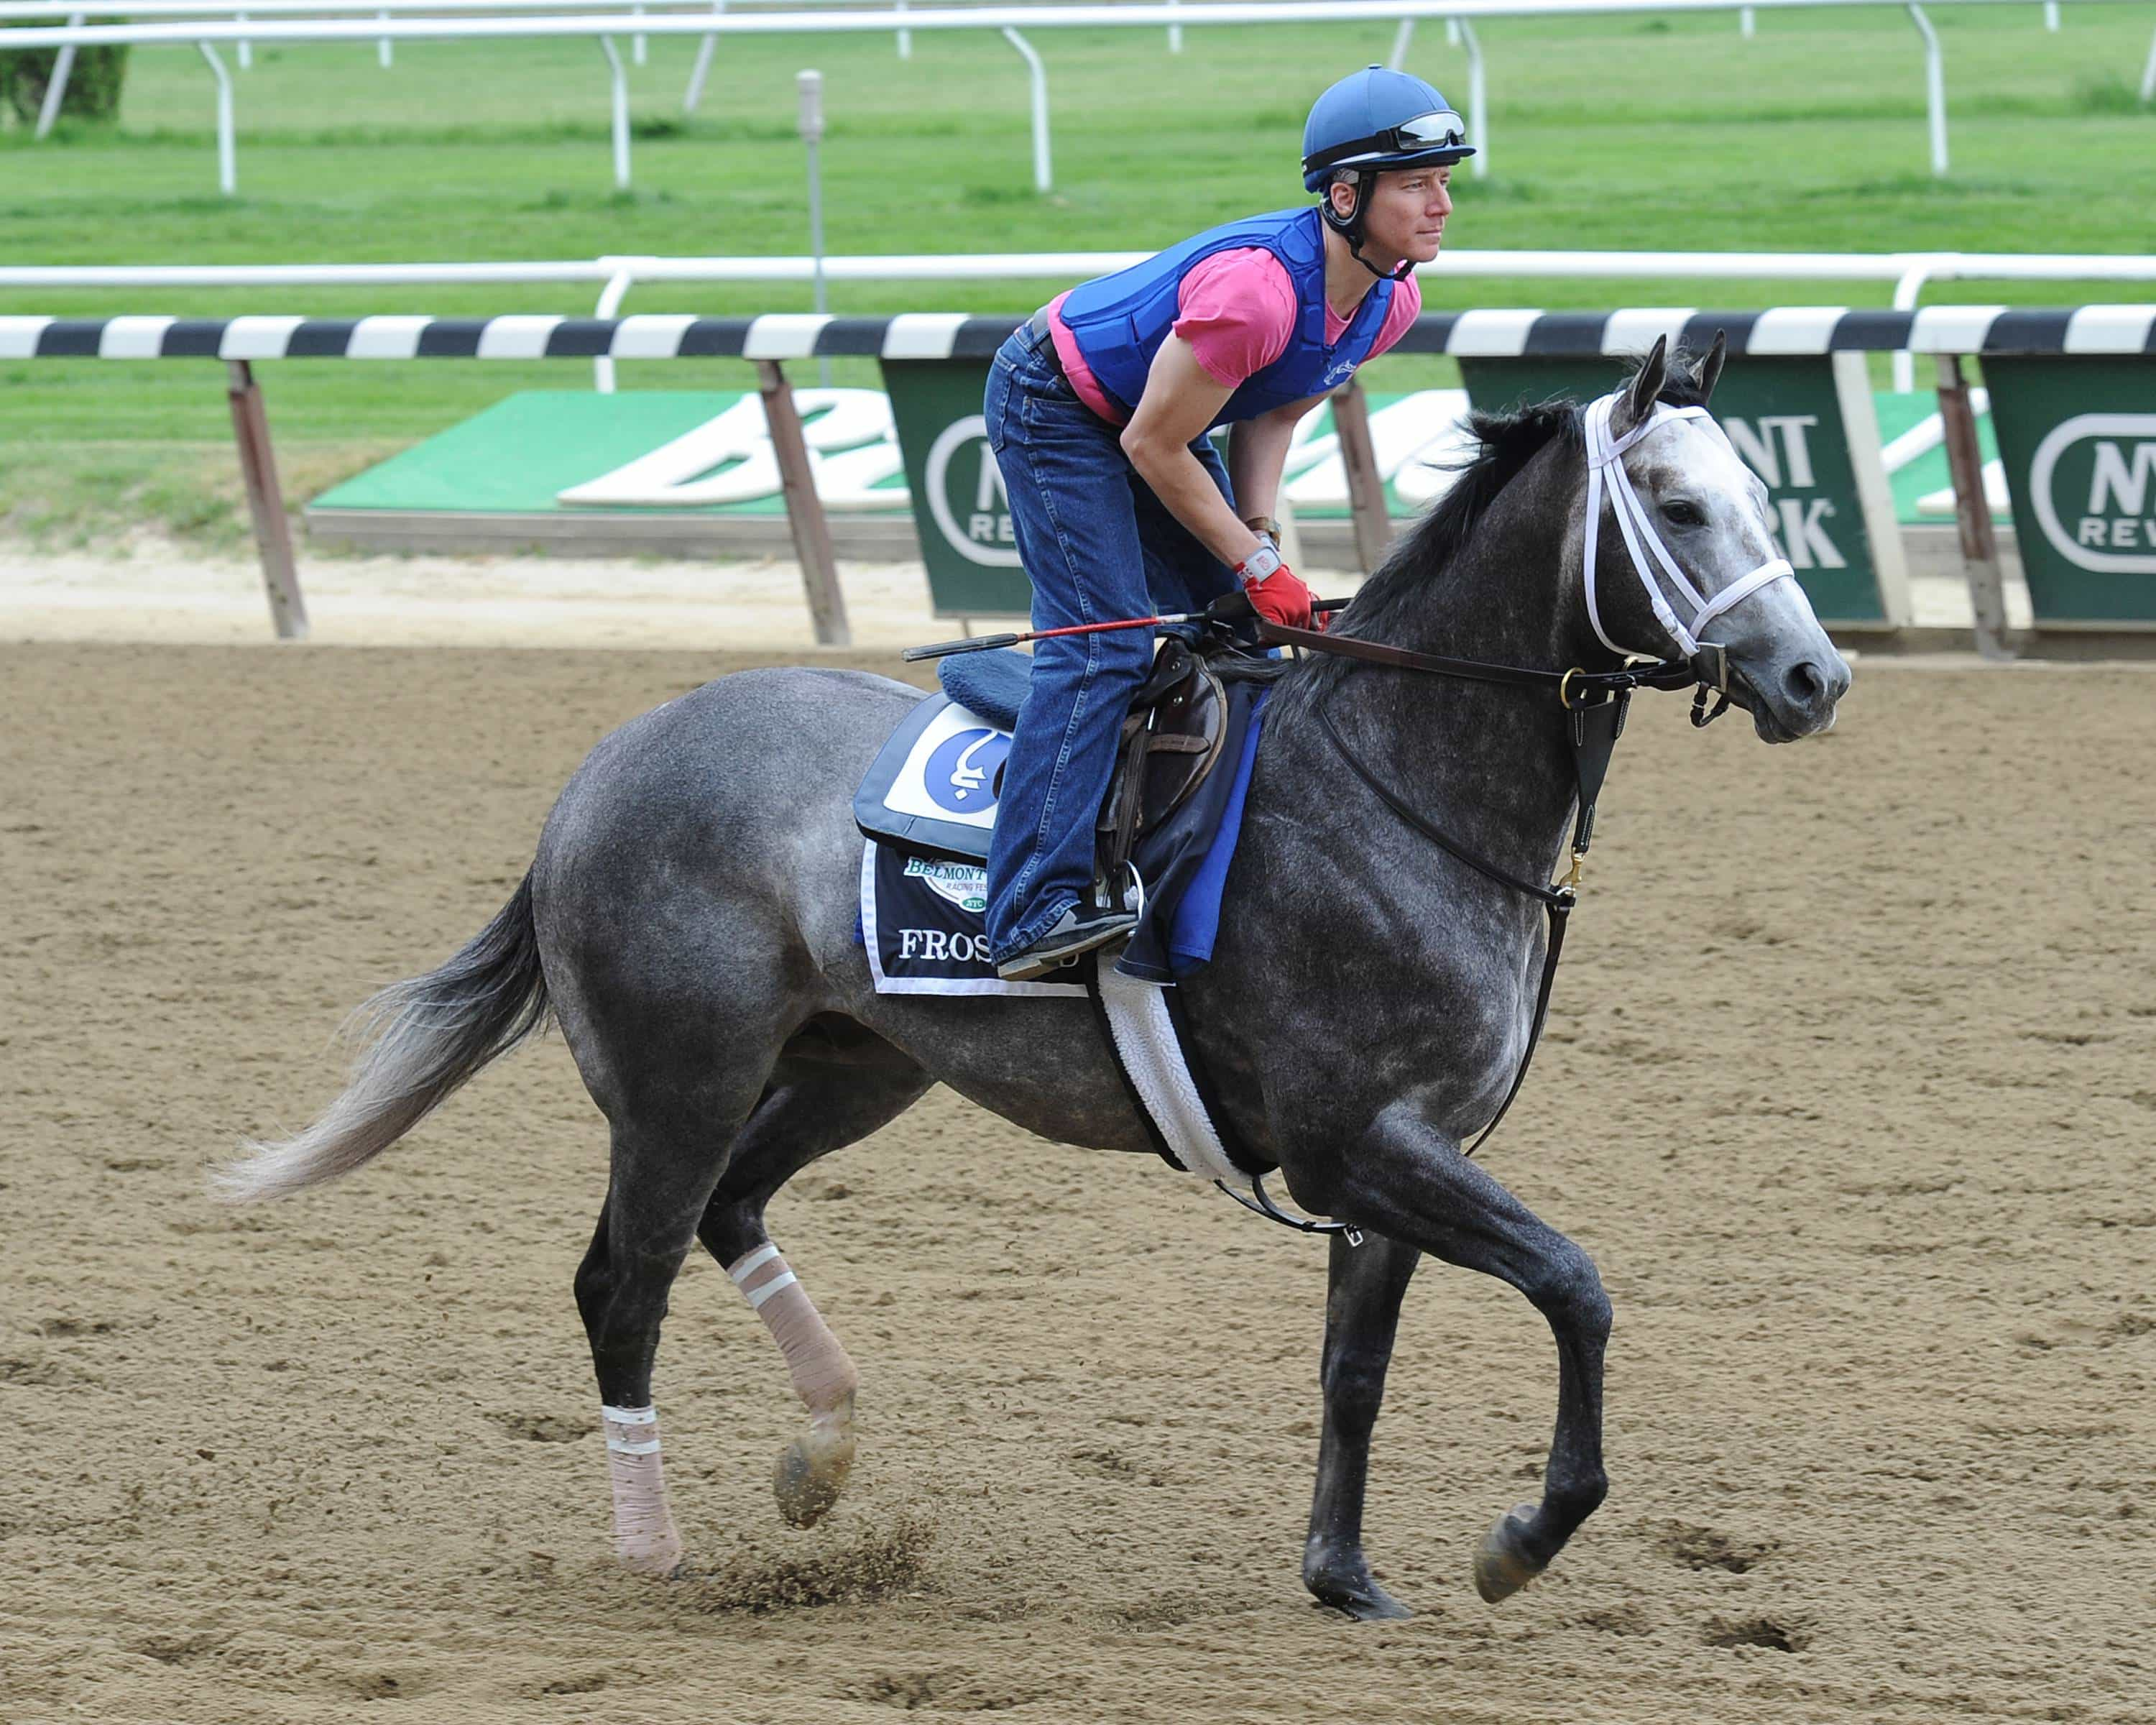 Frosted May 27 credit Susie Raisher/NYRA